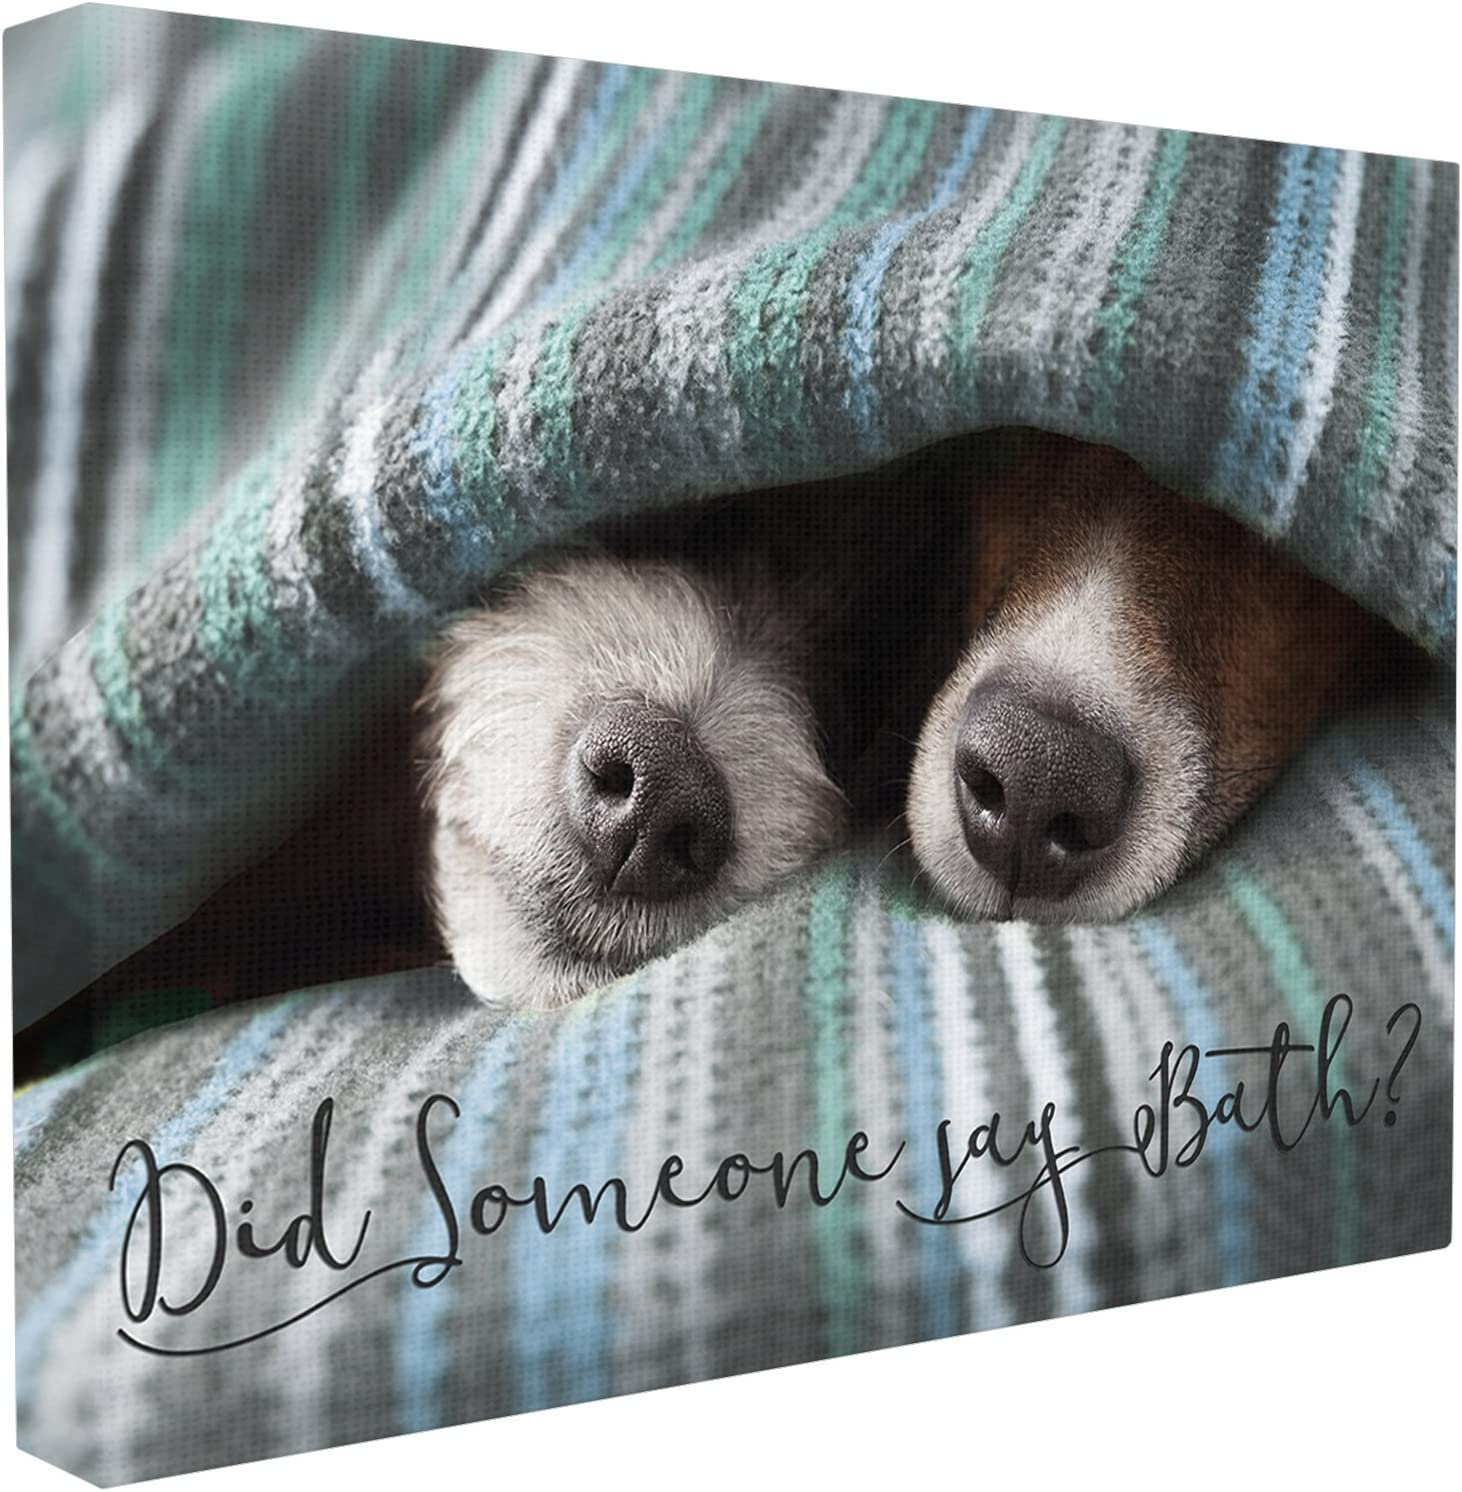 Stupell Home Décor Me Time Dog With Towel Stretched Canvas Wall Art, 16 x 1.5 x 20, Proudly Made in USA